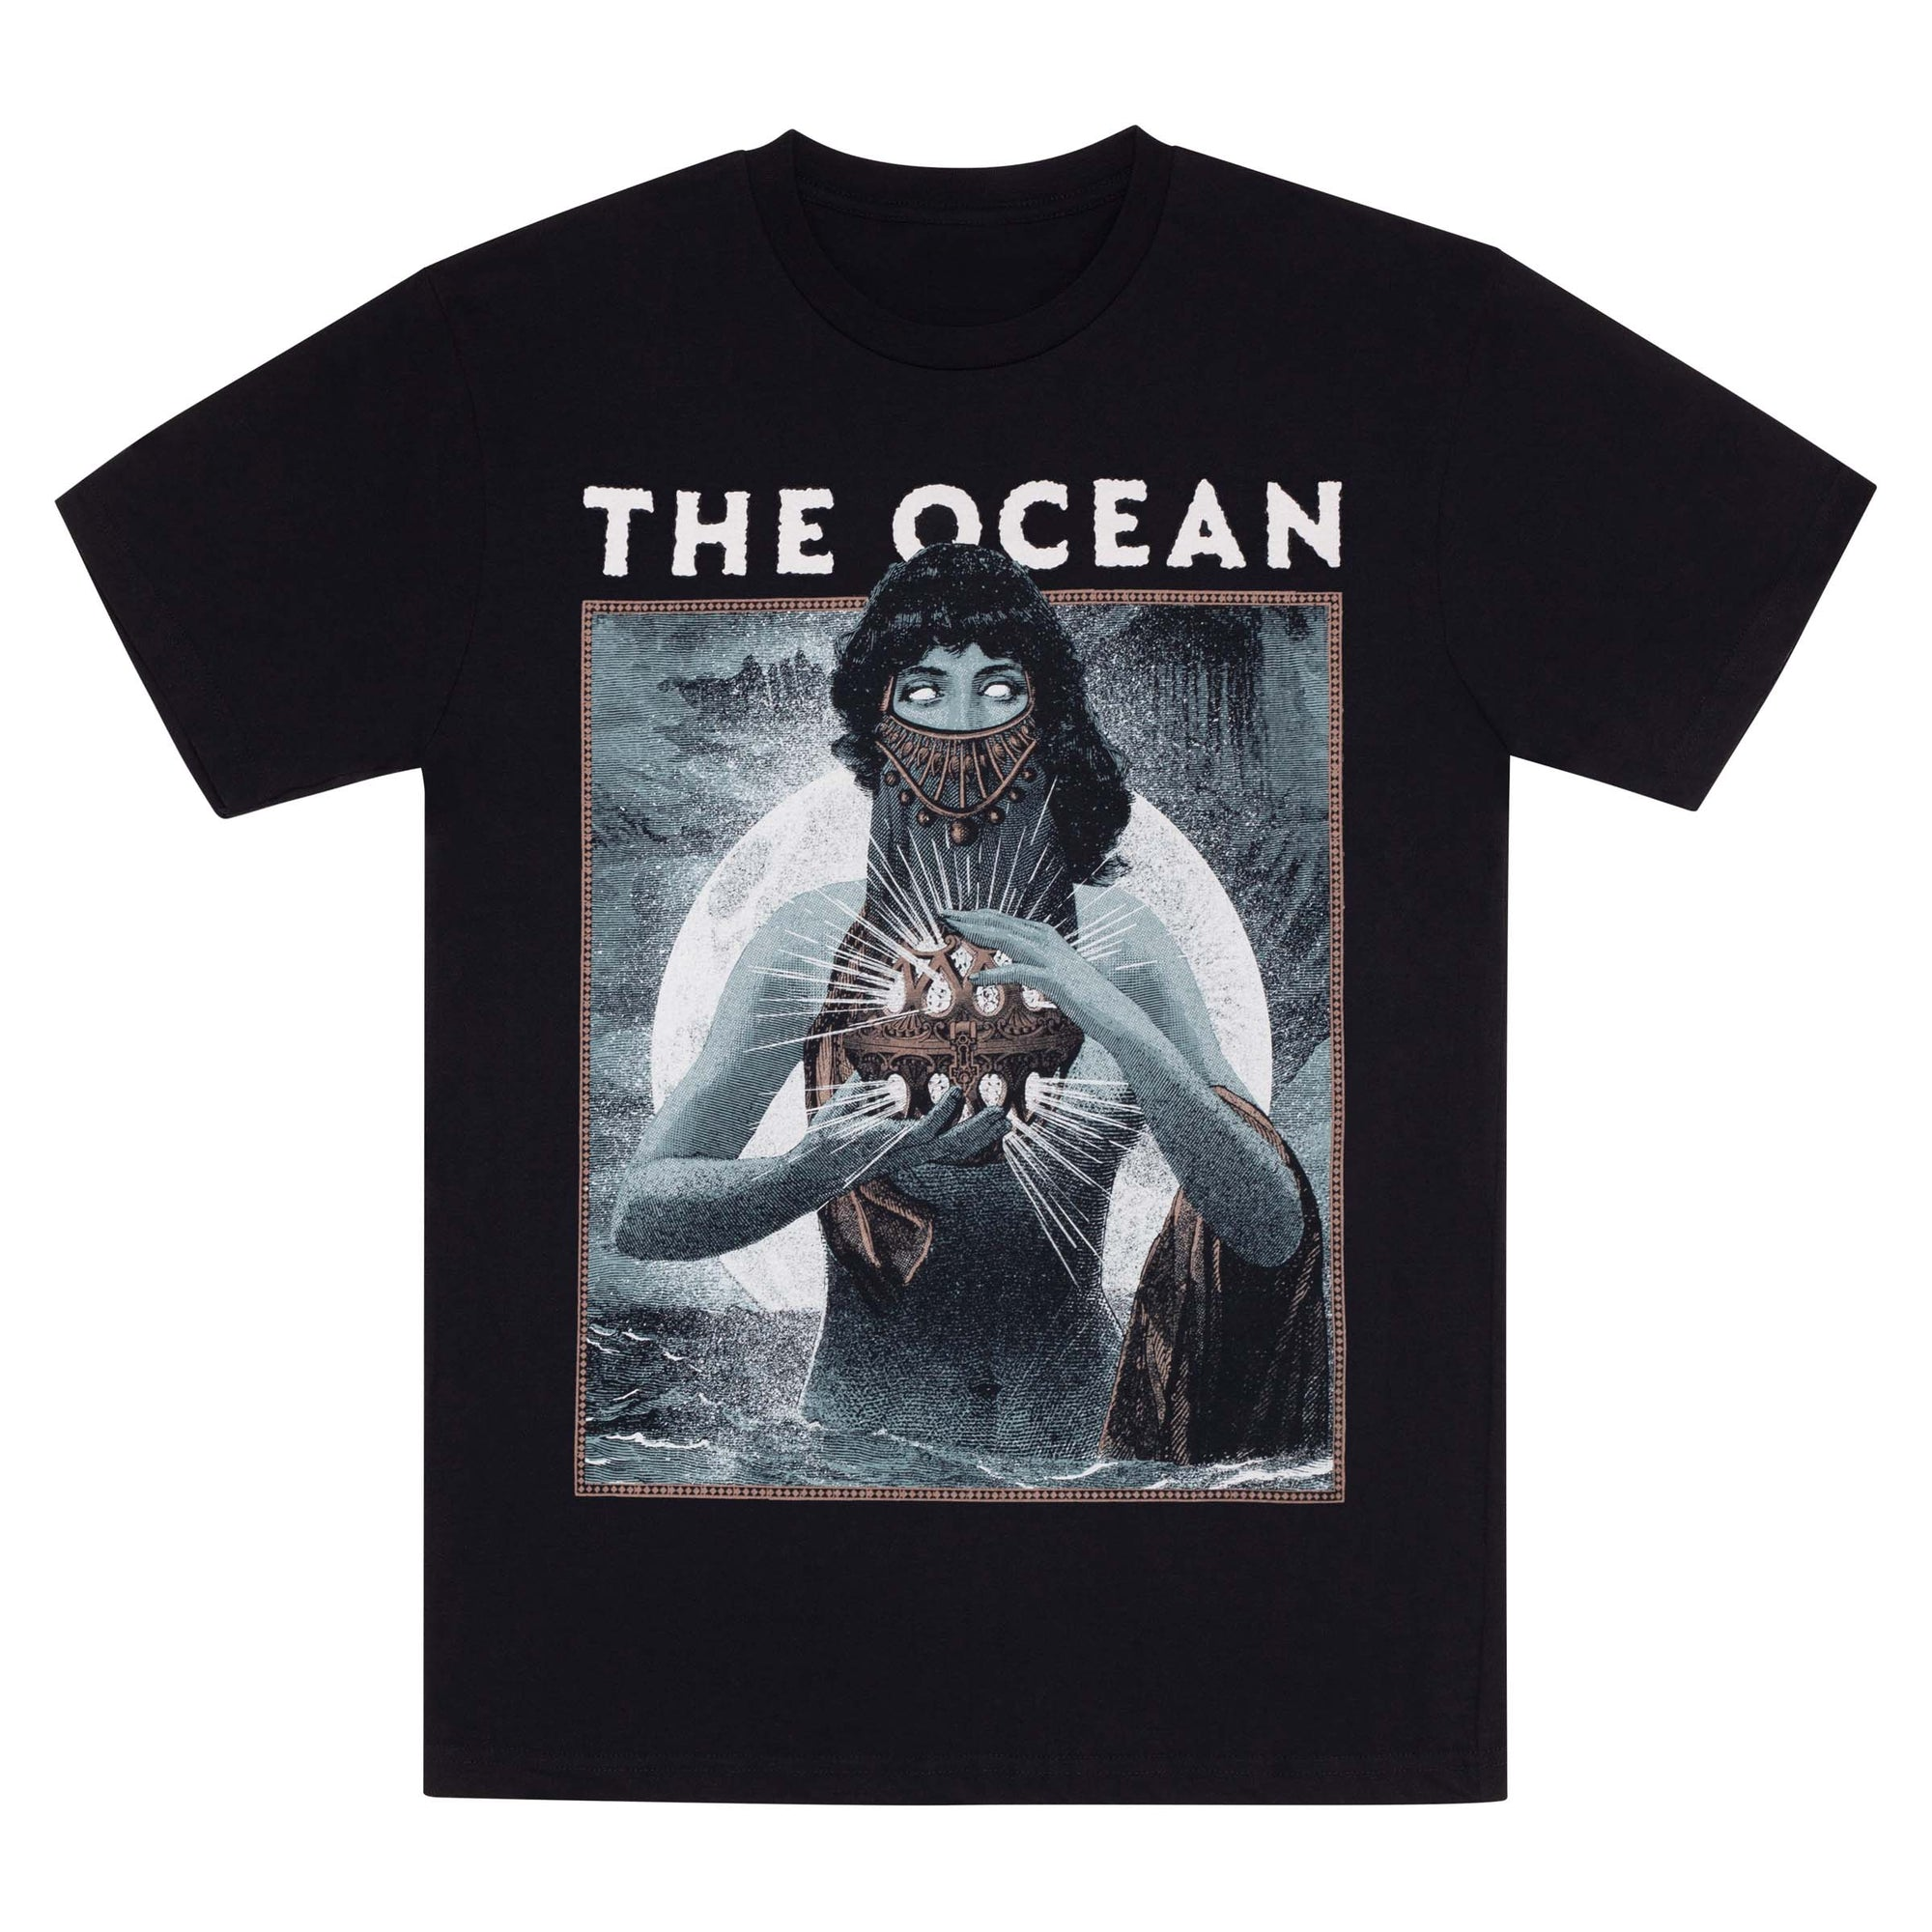 THE OCEAN // NEPTUNIA T-SHIRT - Wild Thing Records